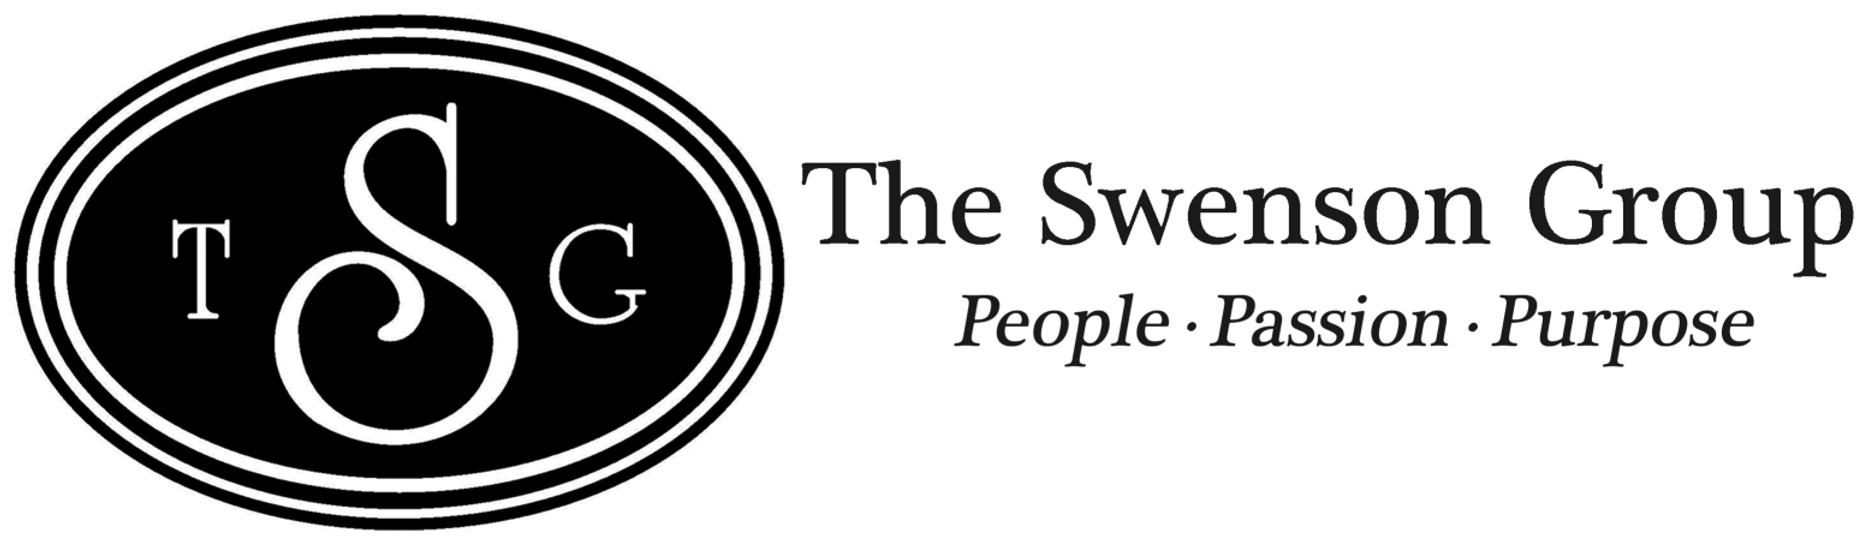 The Swenson Group | People Passion Purpose